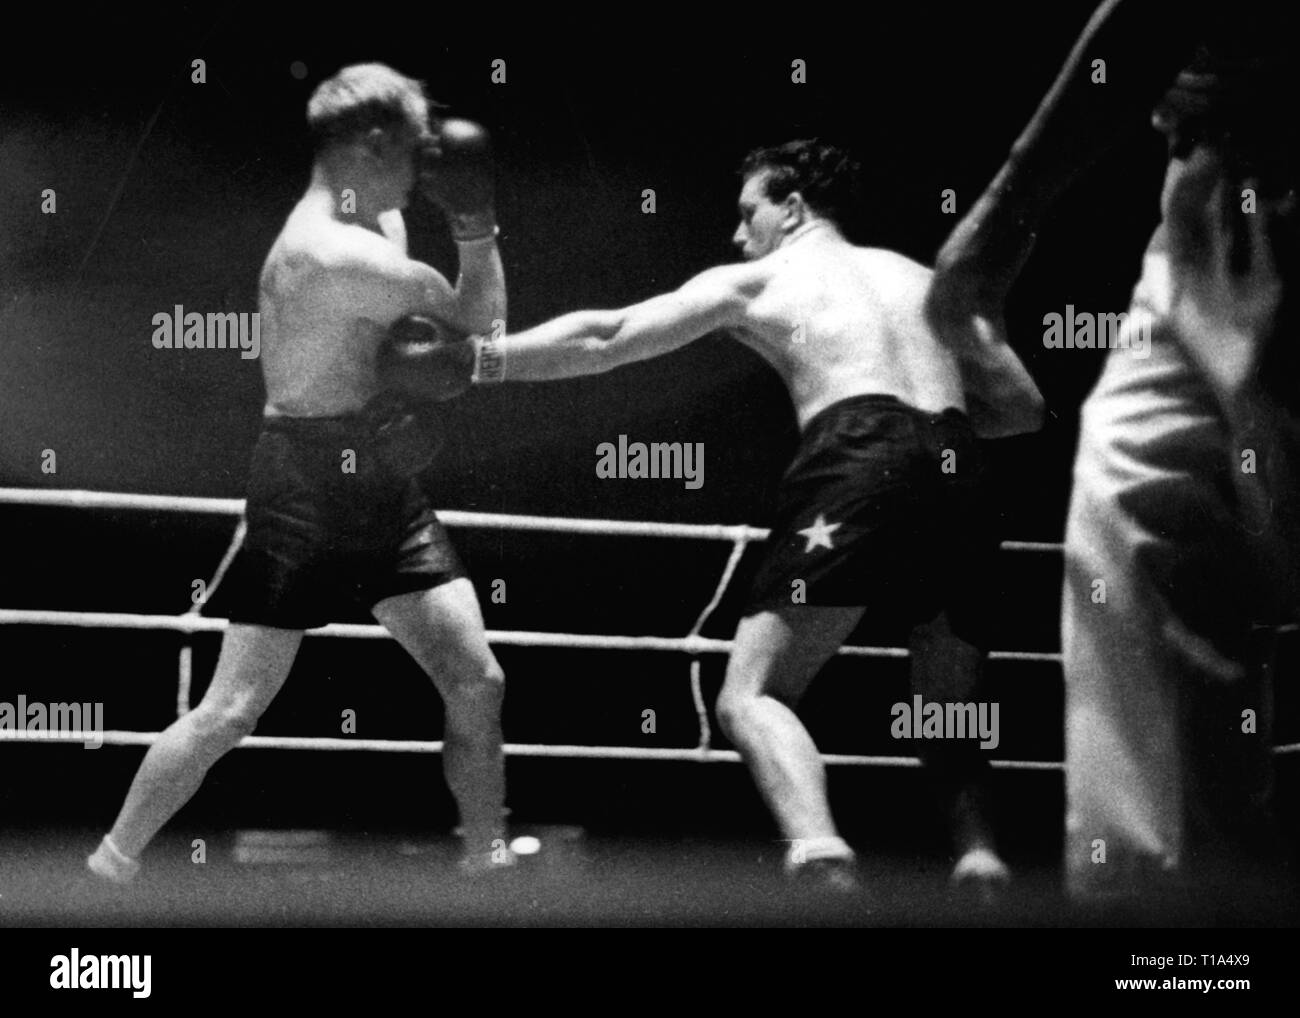 Deportes, boxeo, Boxeo Gustave Roth (Bélgica) contra Jupp Besselmann (Alemania), Roth tierras de un hit, Sportpalast, Berlín, 31.1.1938, Additional-Rights-Clearance-Info-Not-Available Imagen De Stock